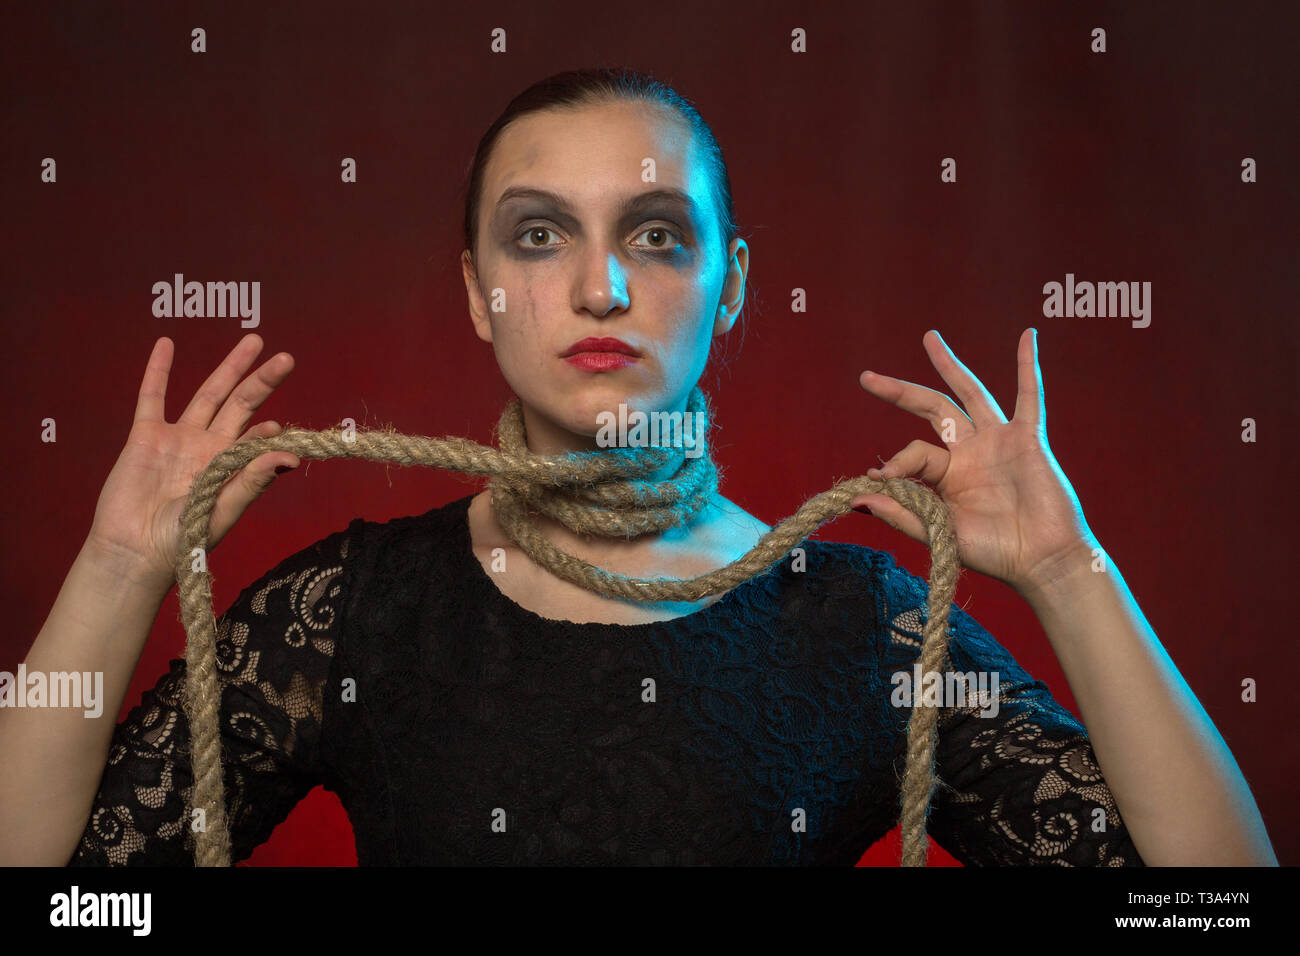 serious woman with rope on neck at red background looking at camera - Stock Image